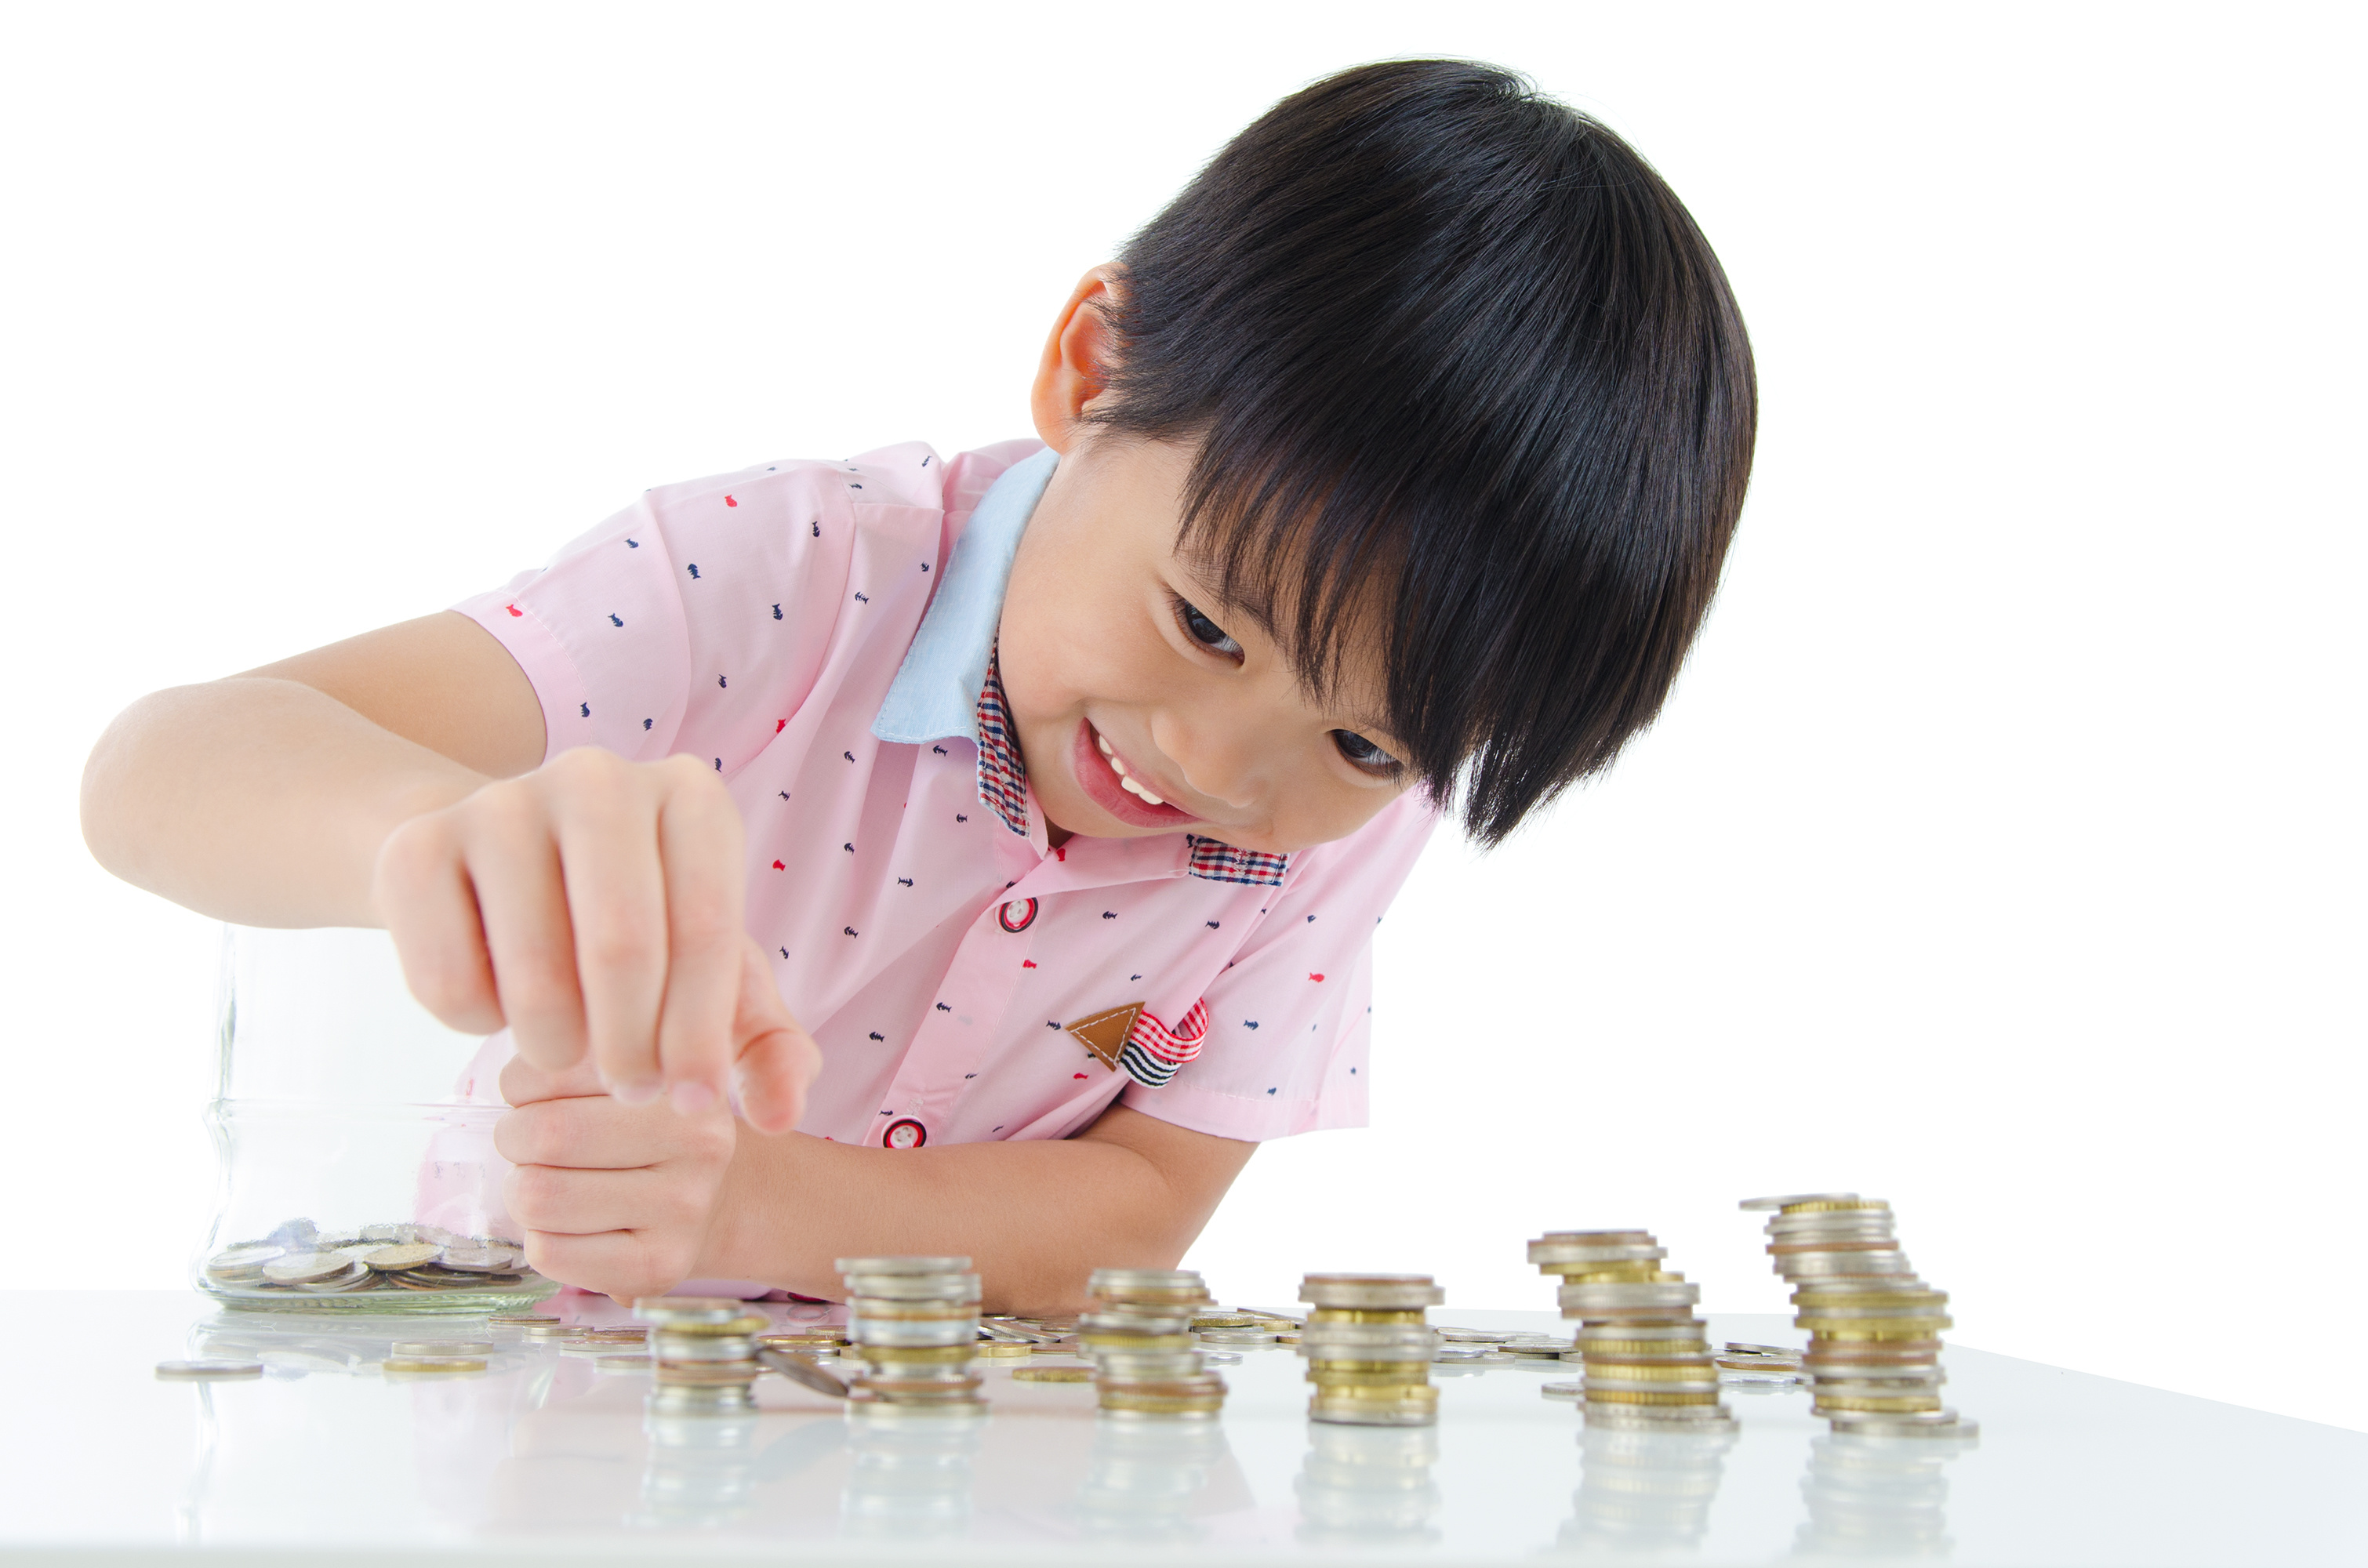 10 Games To Teach Kids About Money